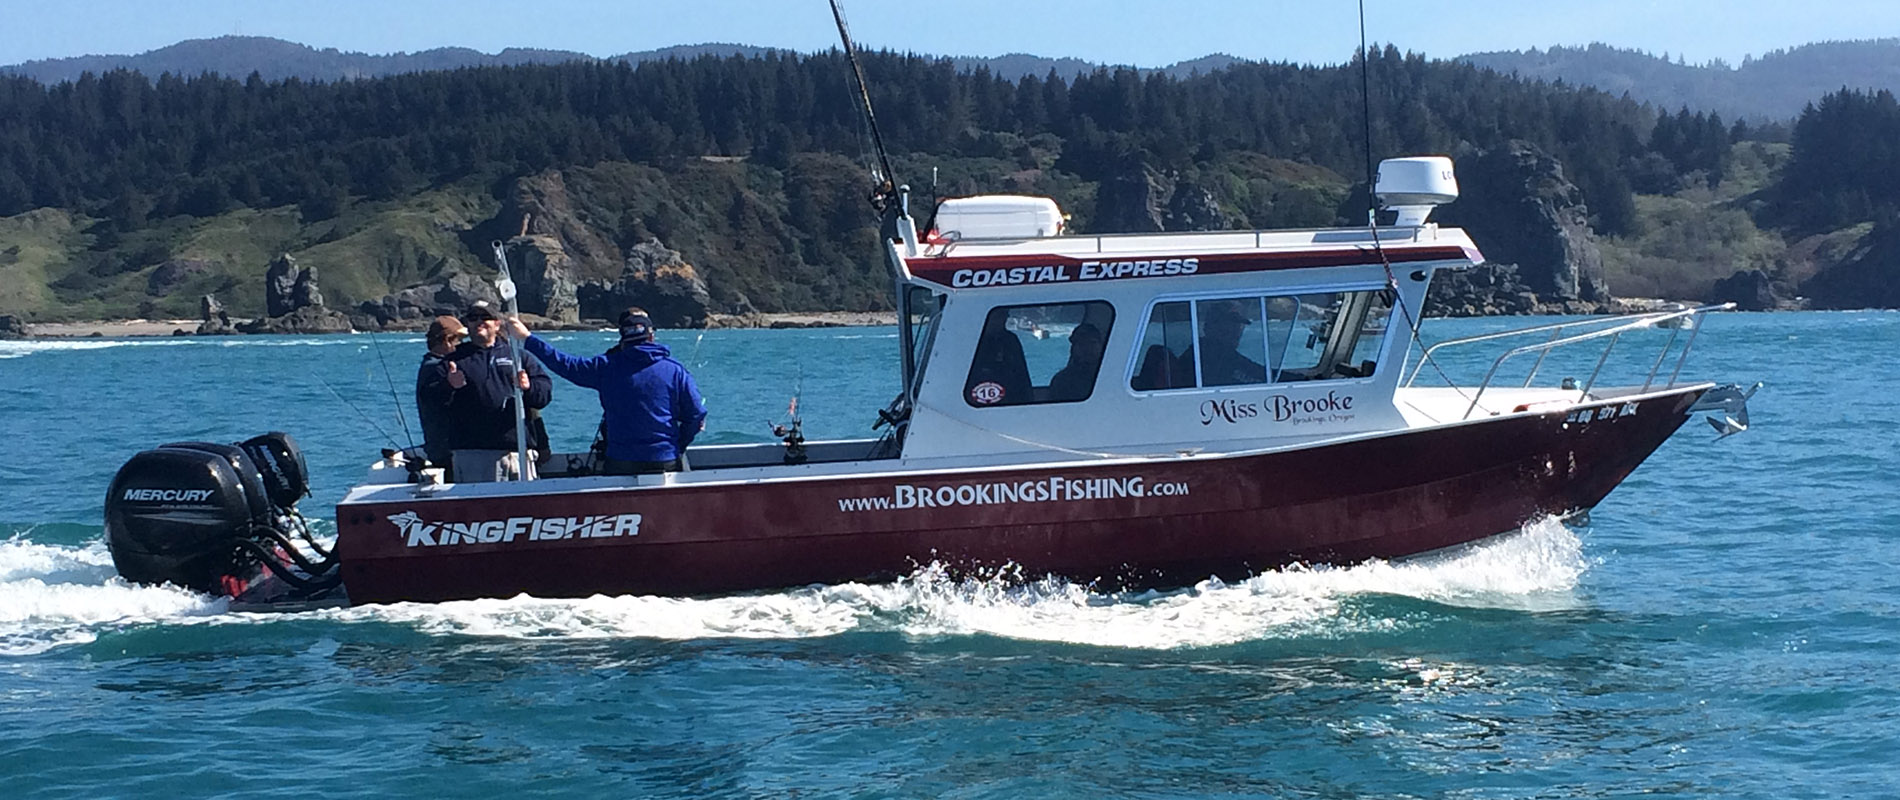 Our story southern oregon fishing brookings fishing for Brookings fishing charters